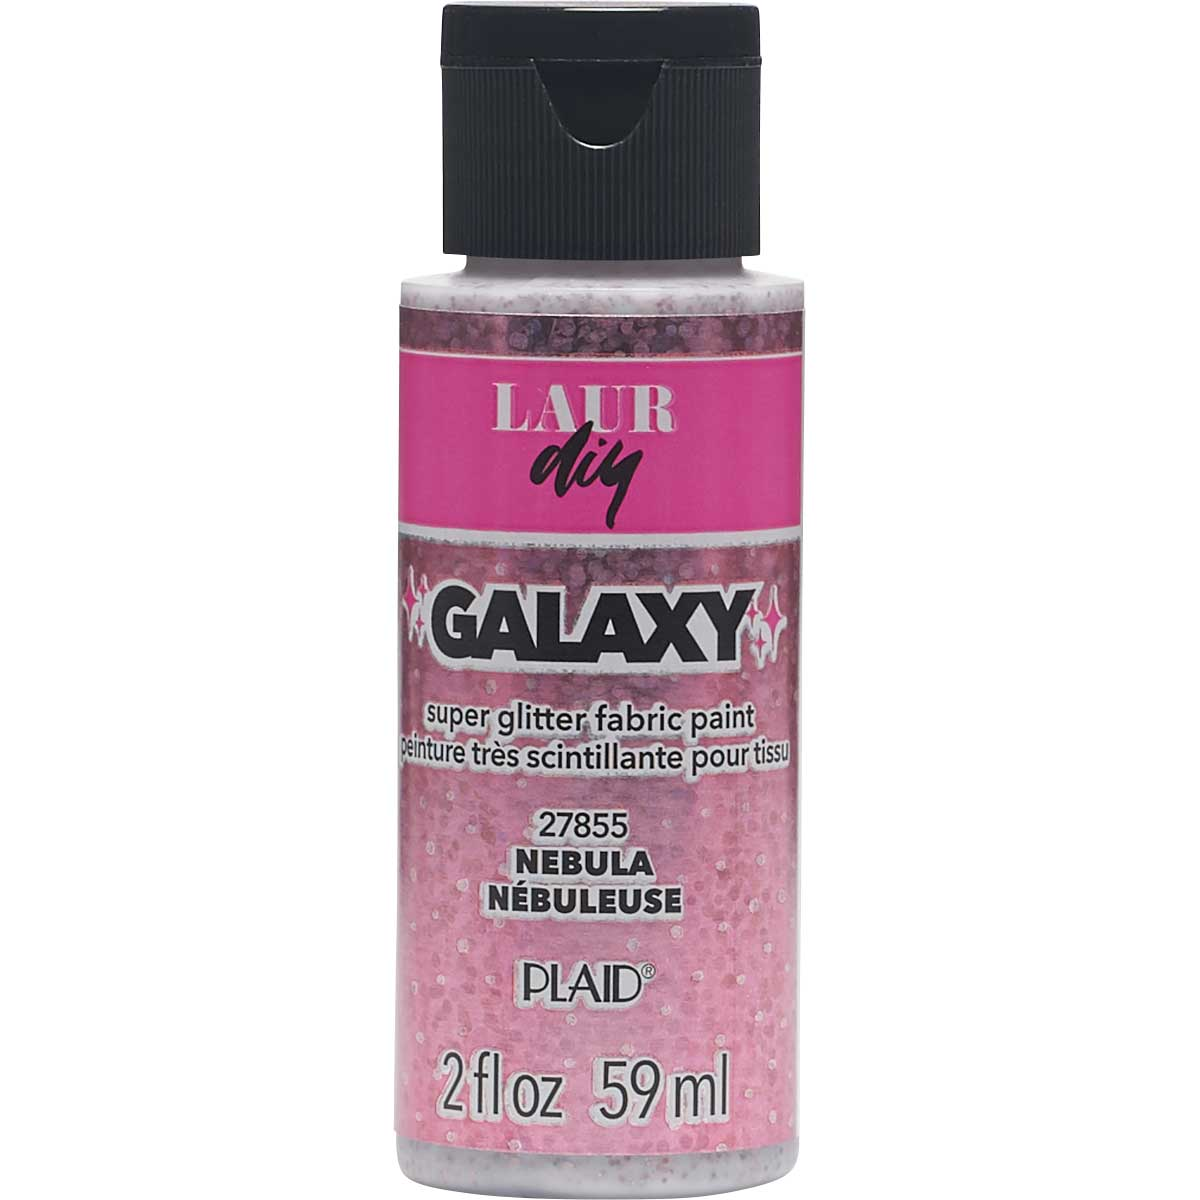 LaurDIY ® Galaxy Glitter Fabric Paint - Nebula, 2 oz.